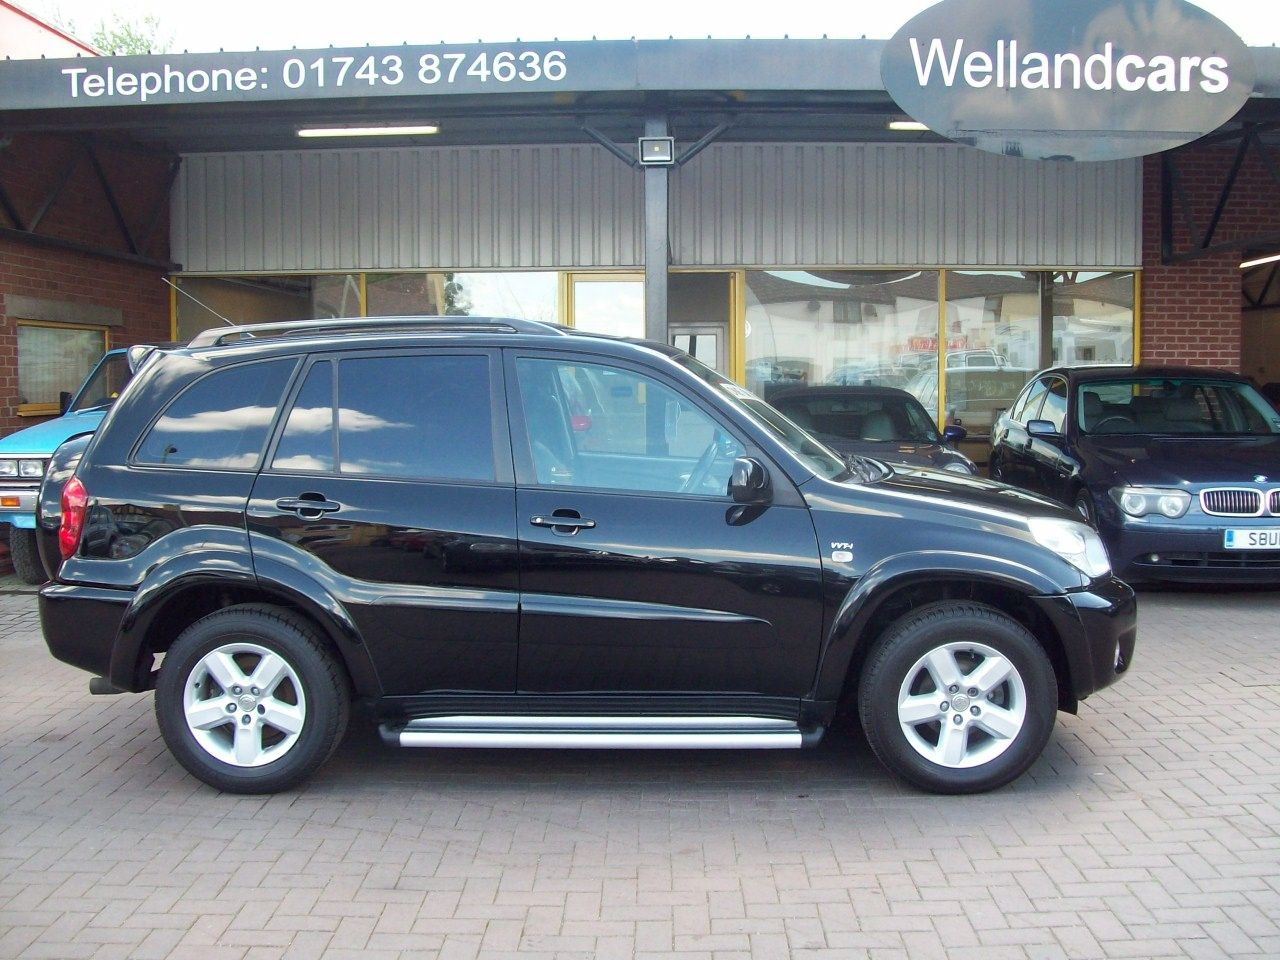 Toyota Rav 4 2.0 XT3 VVTi 5dr 4X4 Manual, 1 Lady Owner, F/S/H, Leather, A/C, Sunroof Estate Petrol Black at Welland Cars Shrewsbury